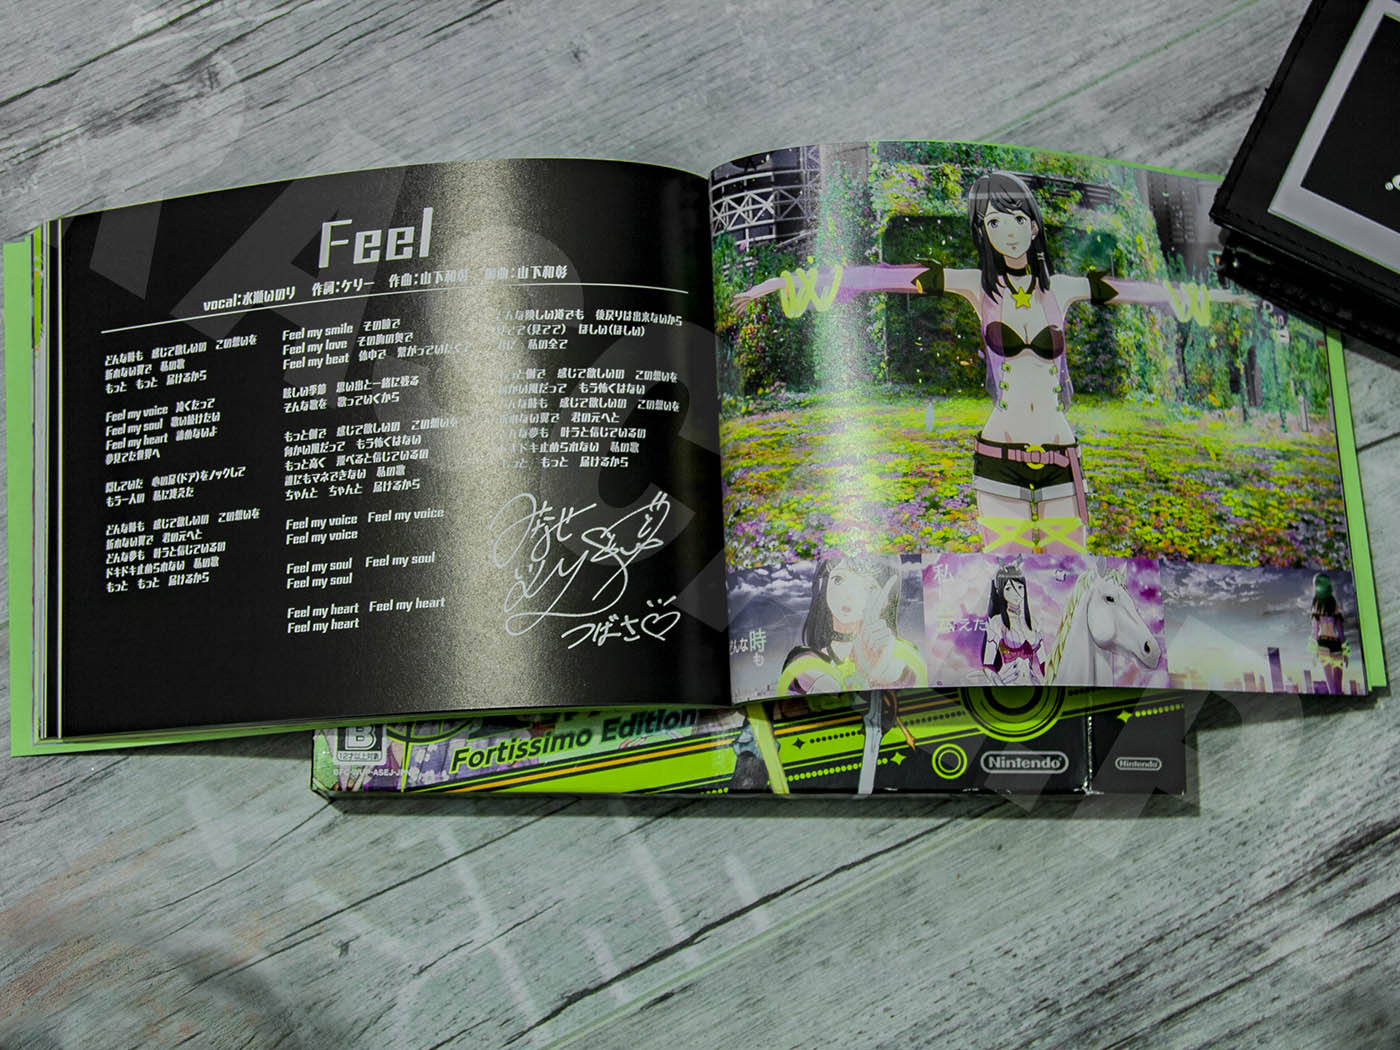 Tokyo Mirage Sessions #FE Fortissimo Edition 2015 - Artbook - Słowa utworu